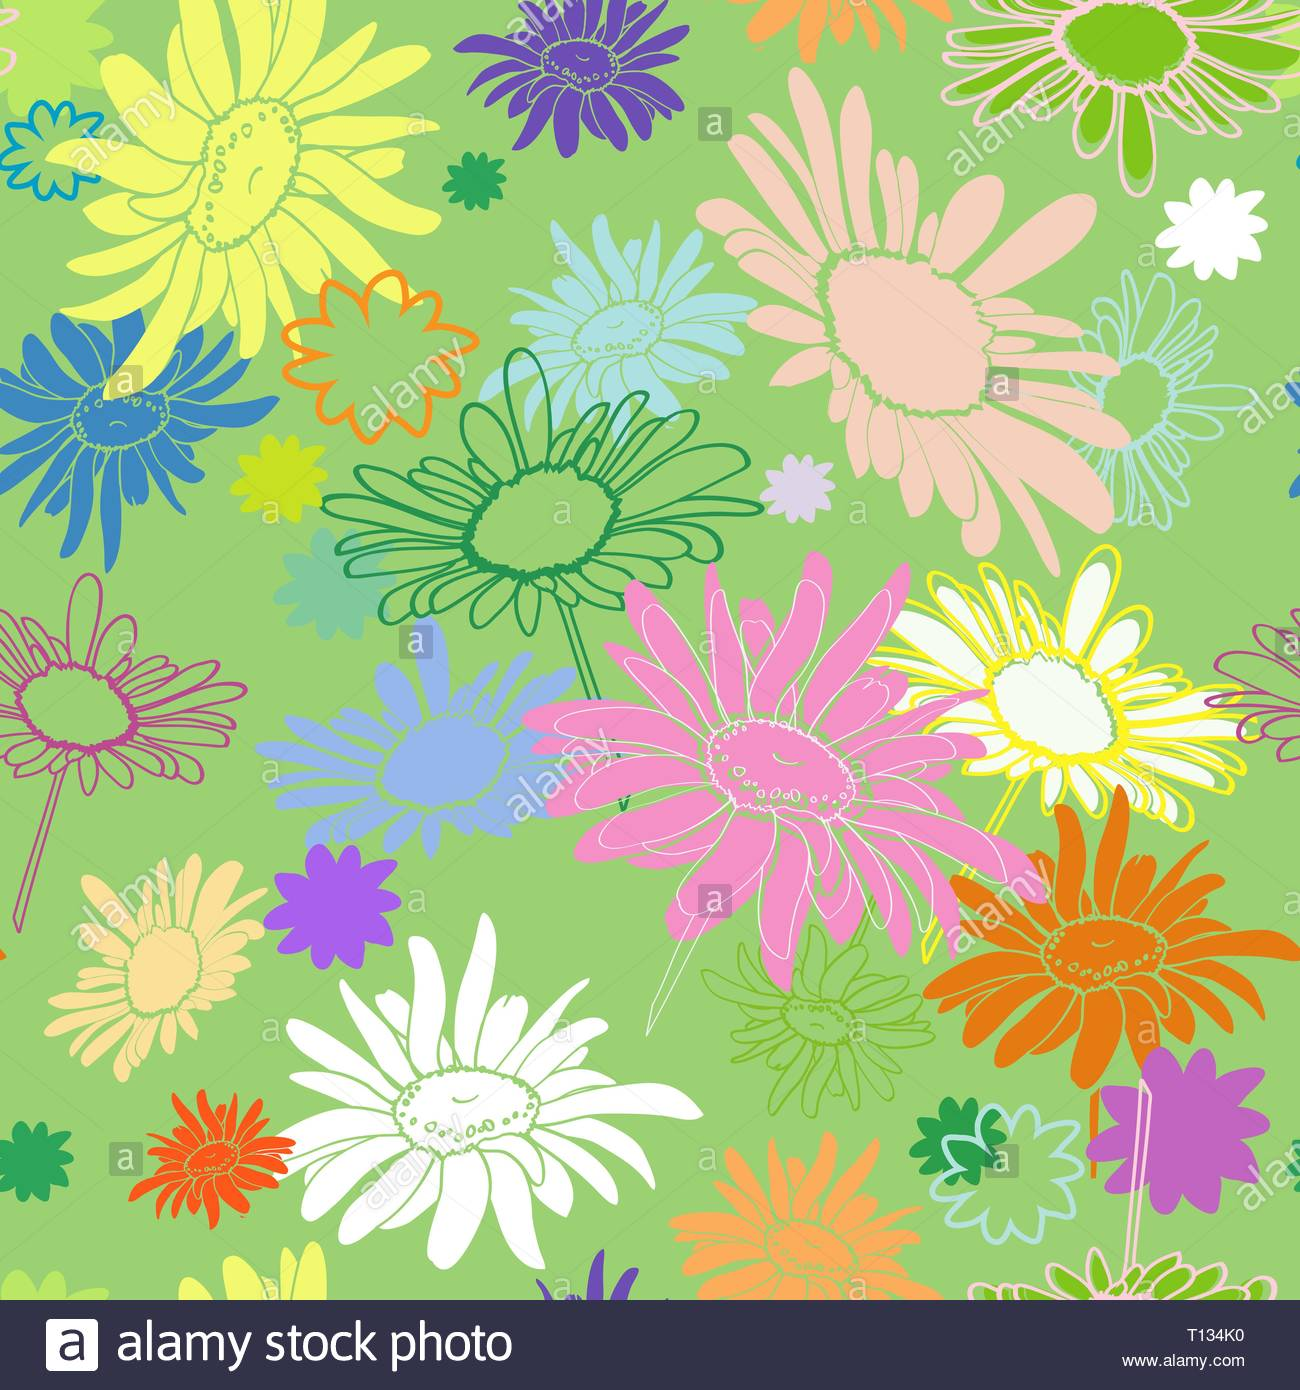 Seamless multi-colored flowers on a green background, with varying degrees of drawing drawn in the thumbnail style - Stock Vector